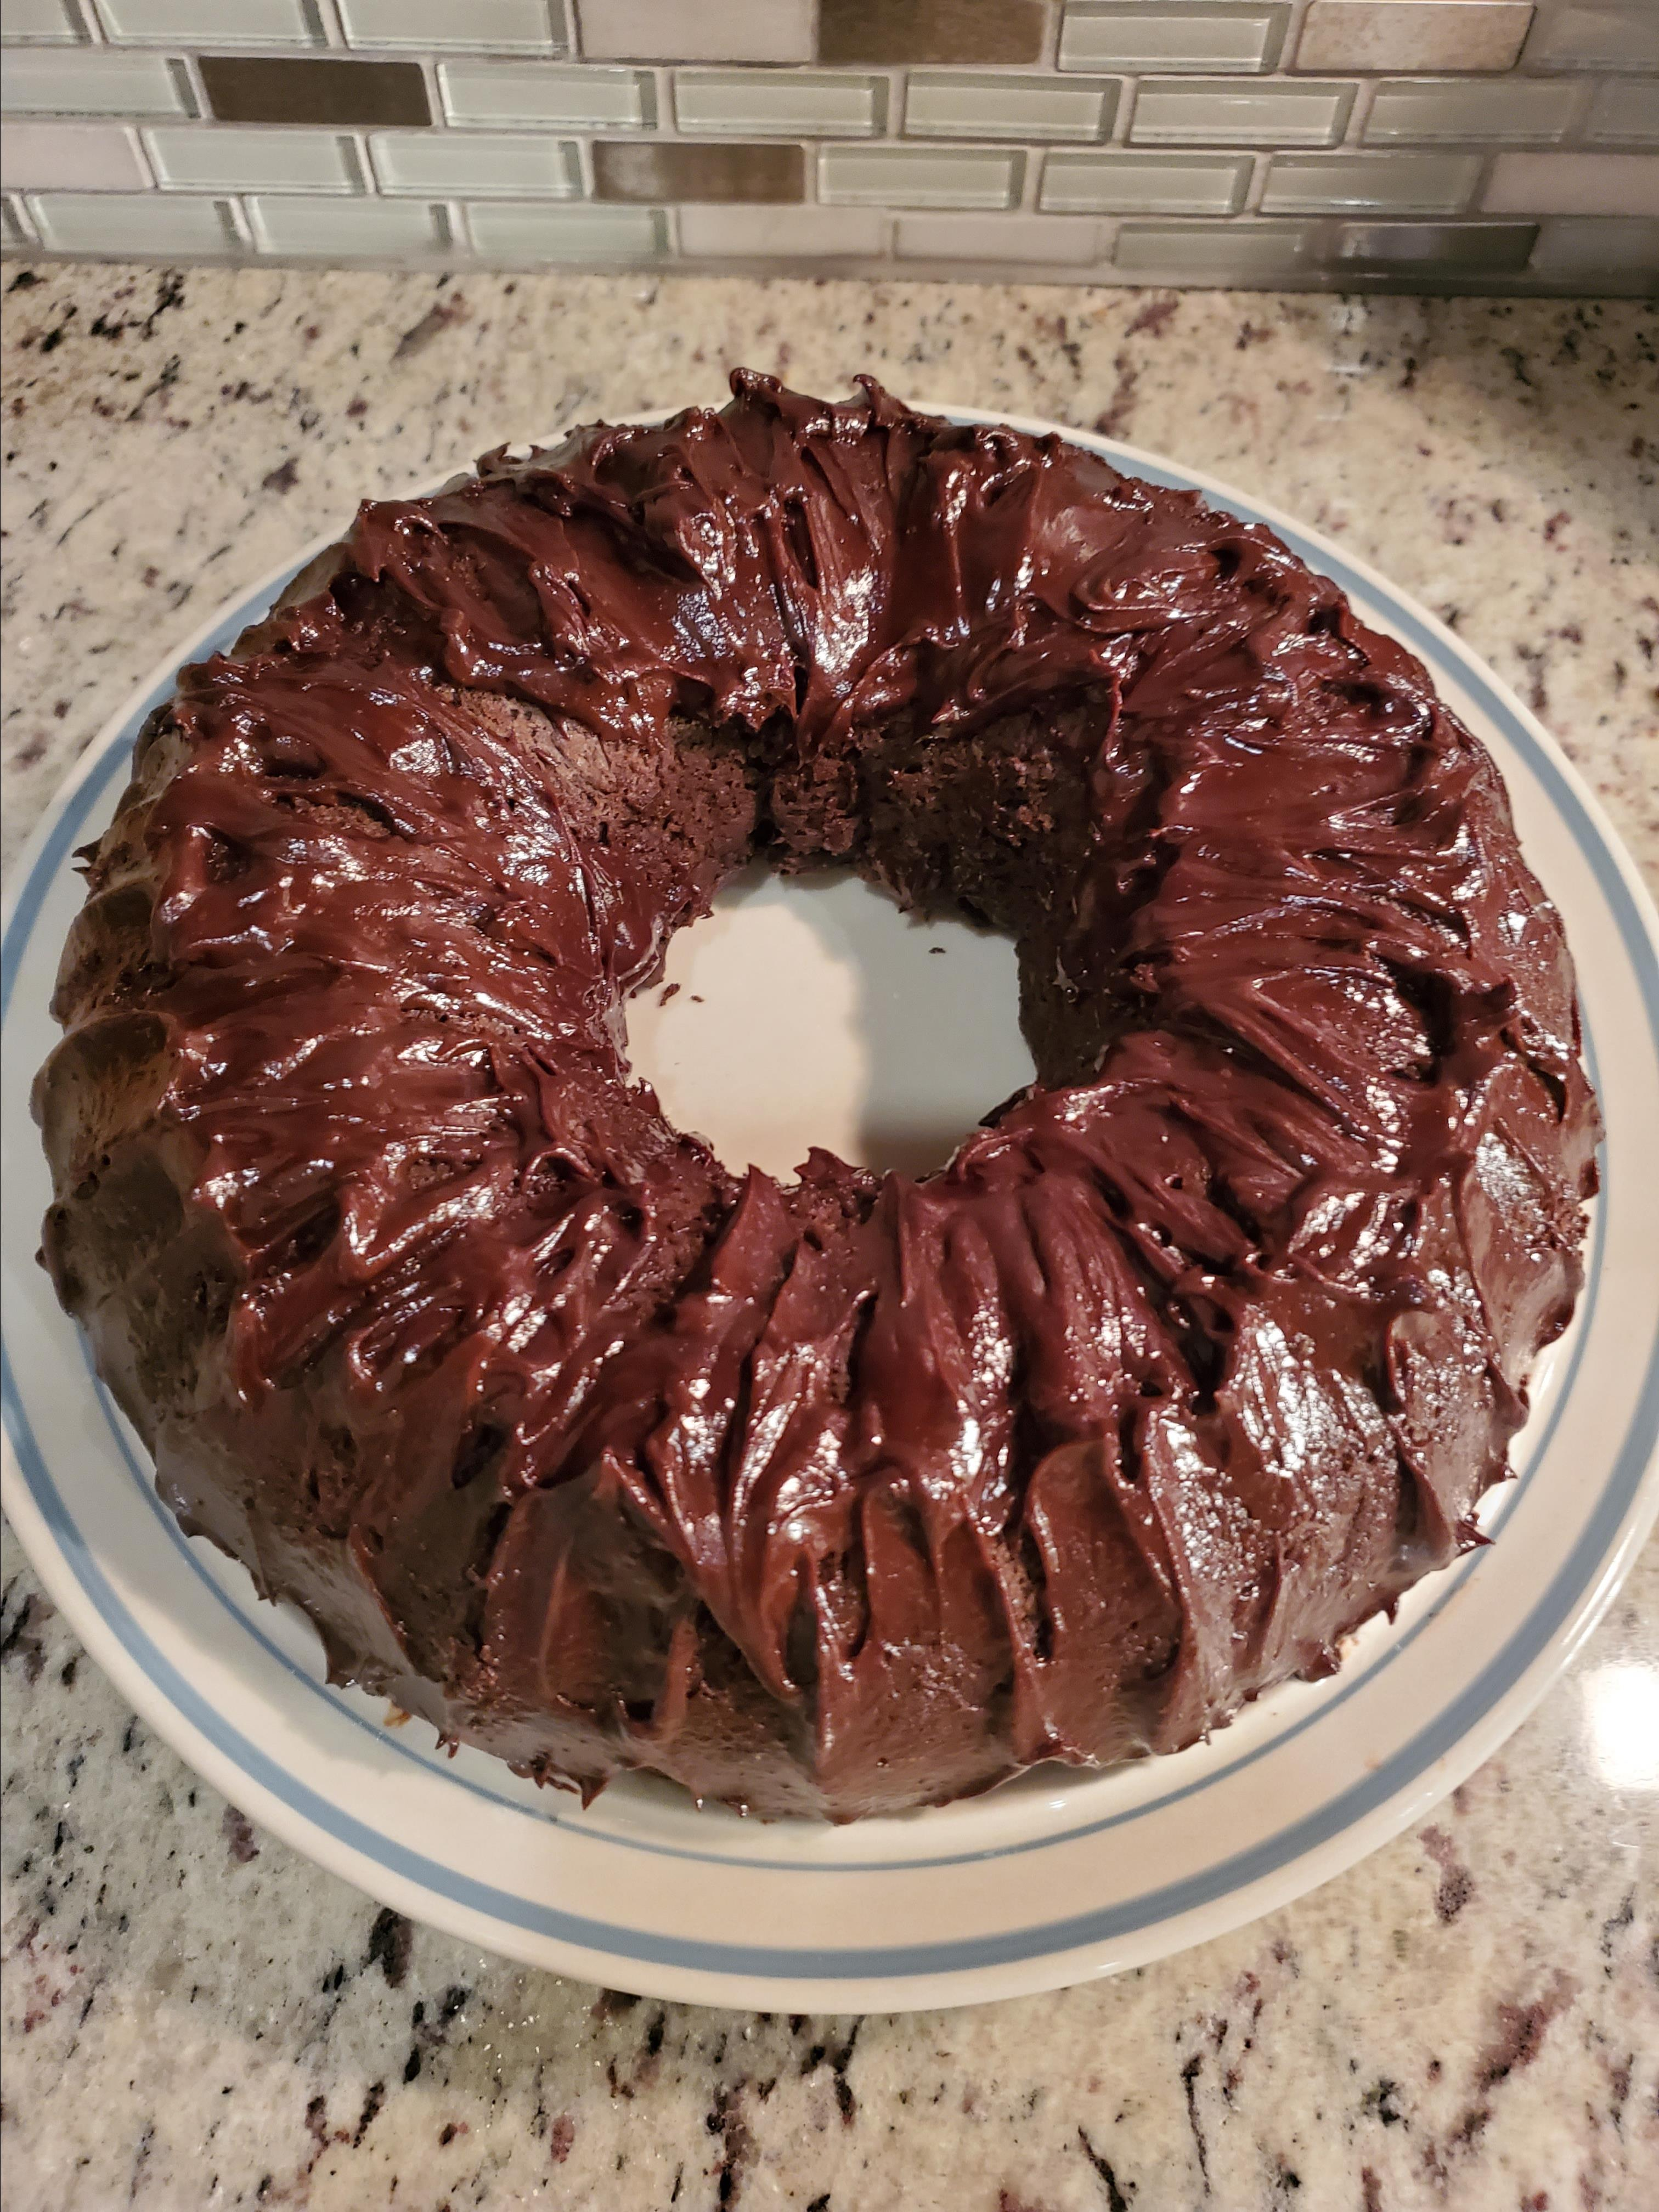 No-Workout-Needed Chocolate Cake Tricia